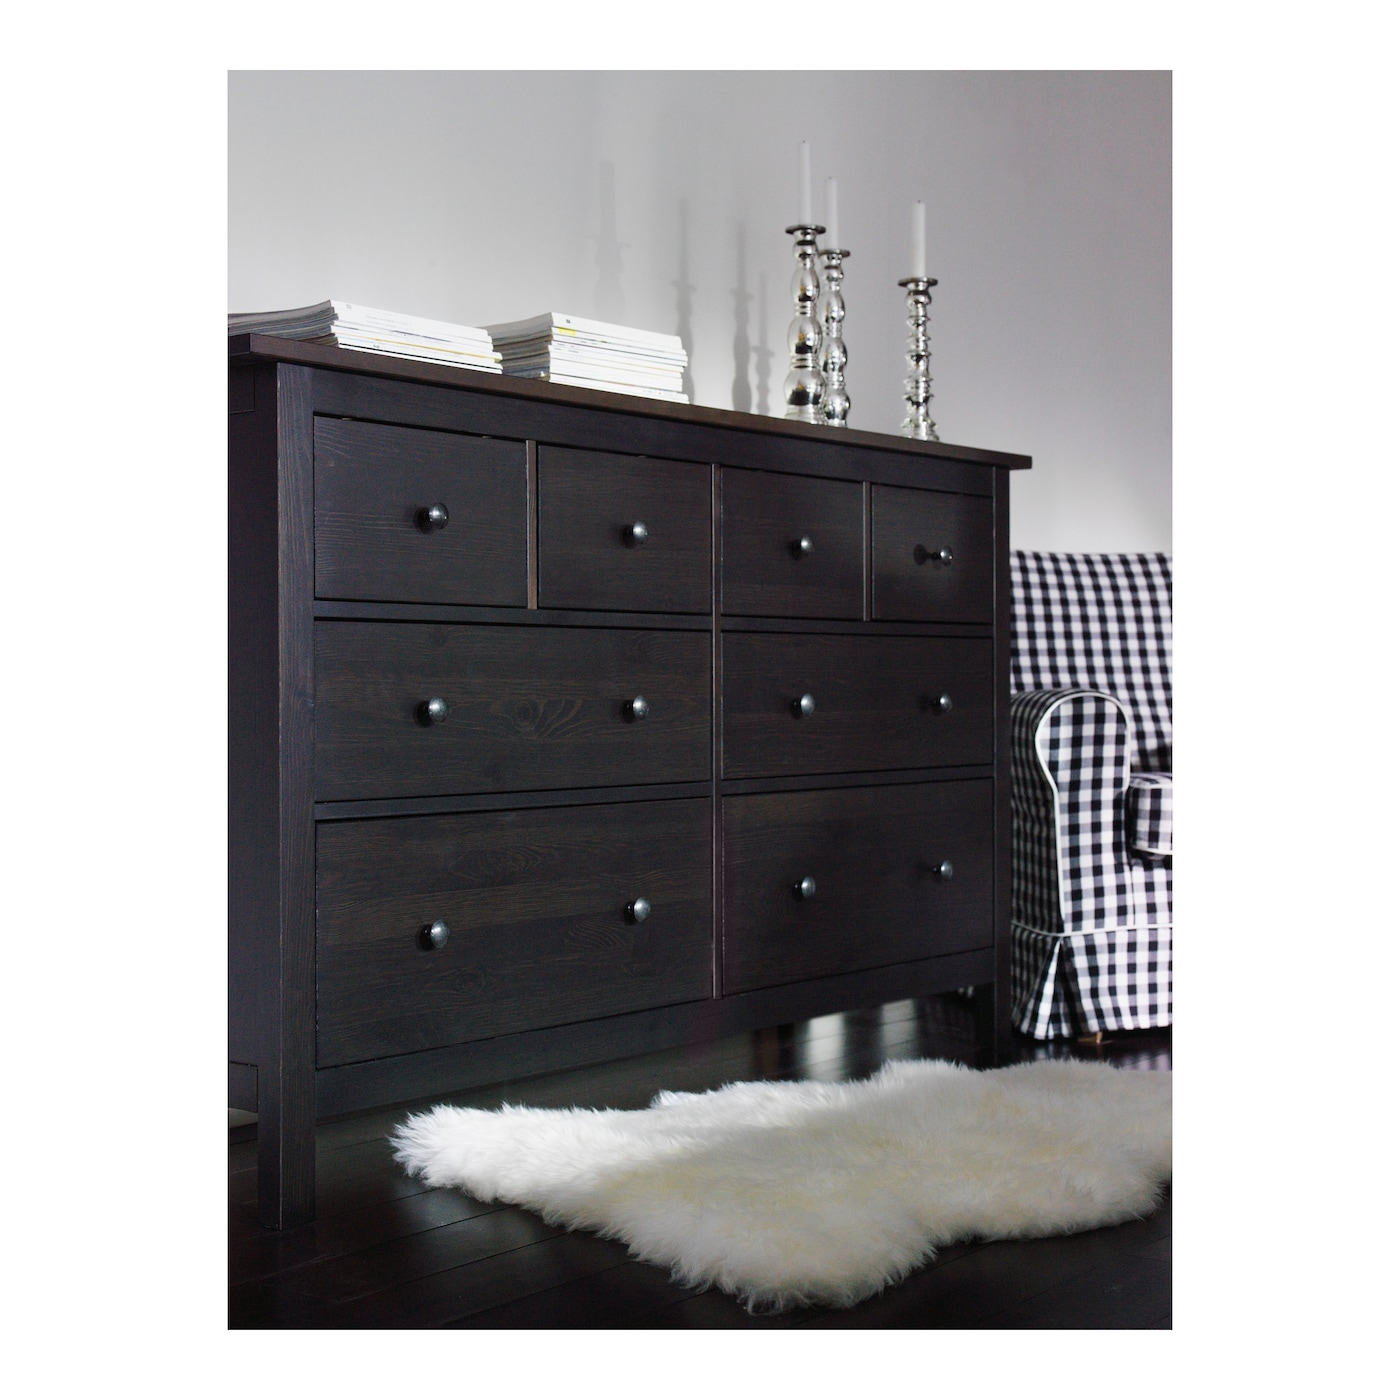 Ikea Hemnes Chest Of 8 Drawers Made Solid Wood Which Is A Hardwearing And